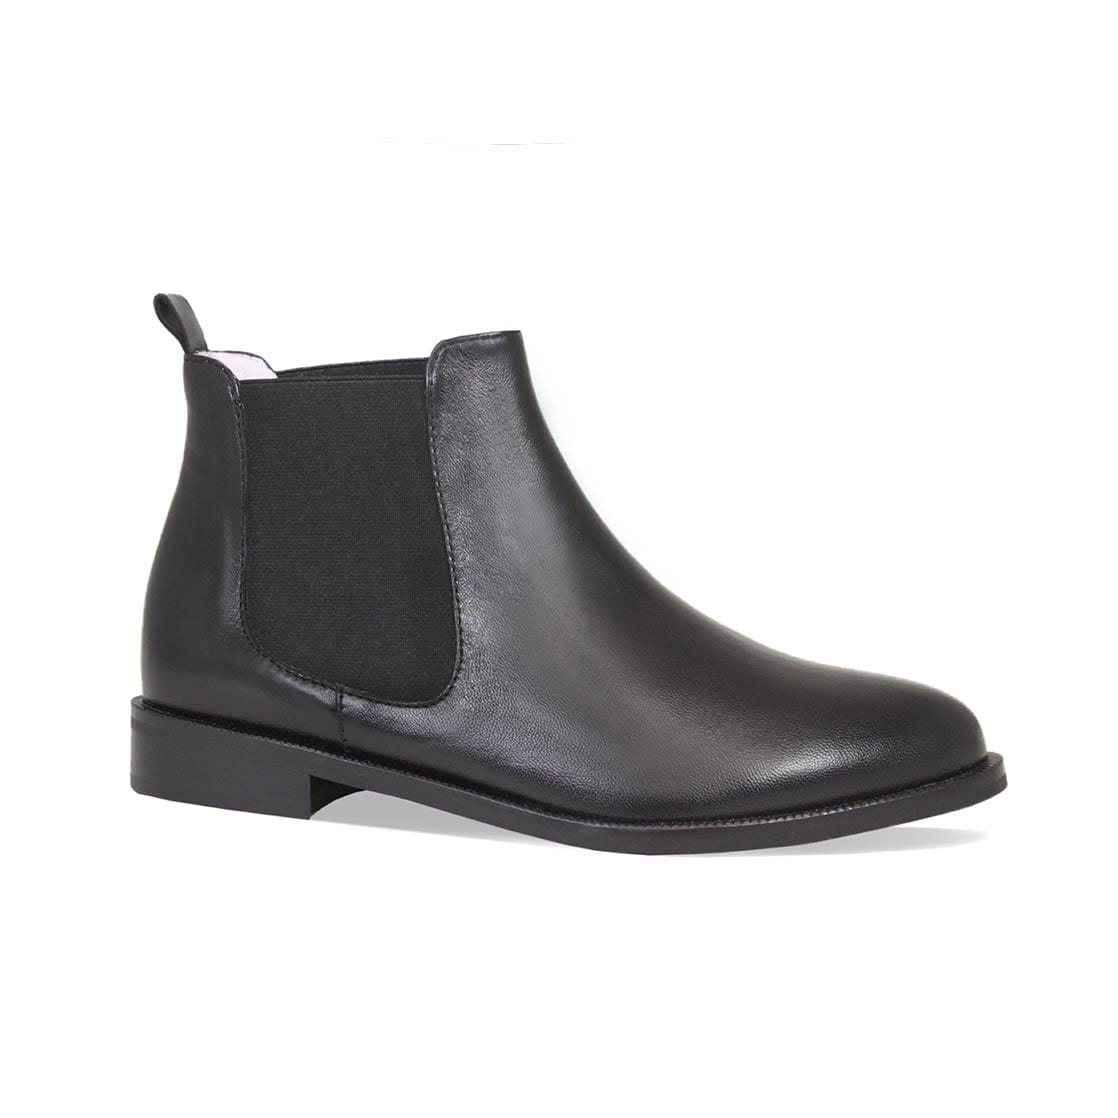 Black Leather Flat Chelsea Boots